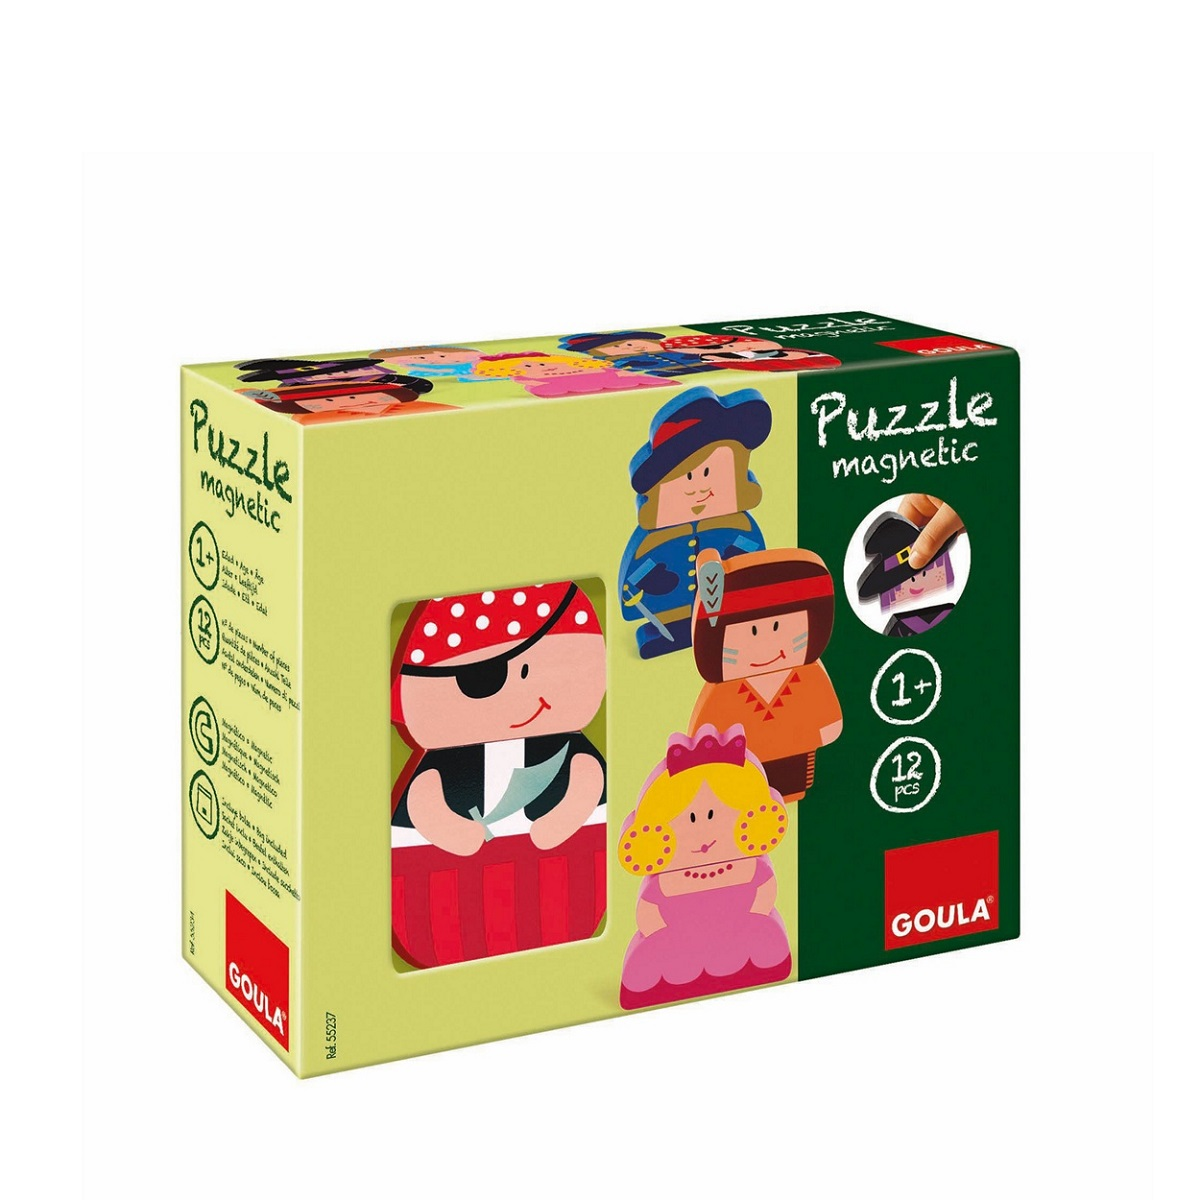 Goula Magnetic Character Puzzle sold by Gifts for little hands